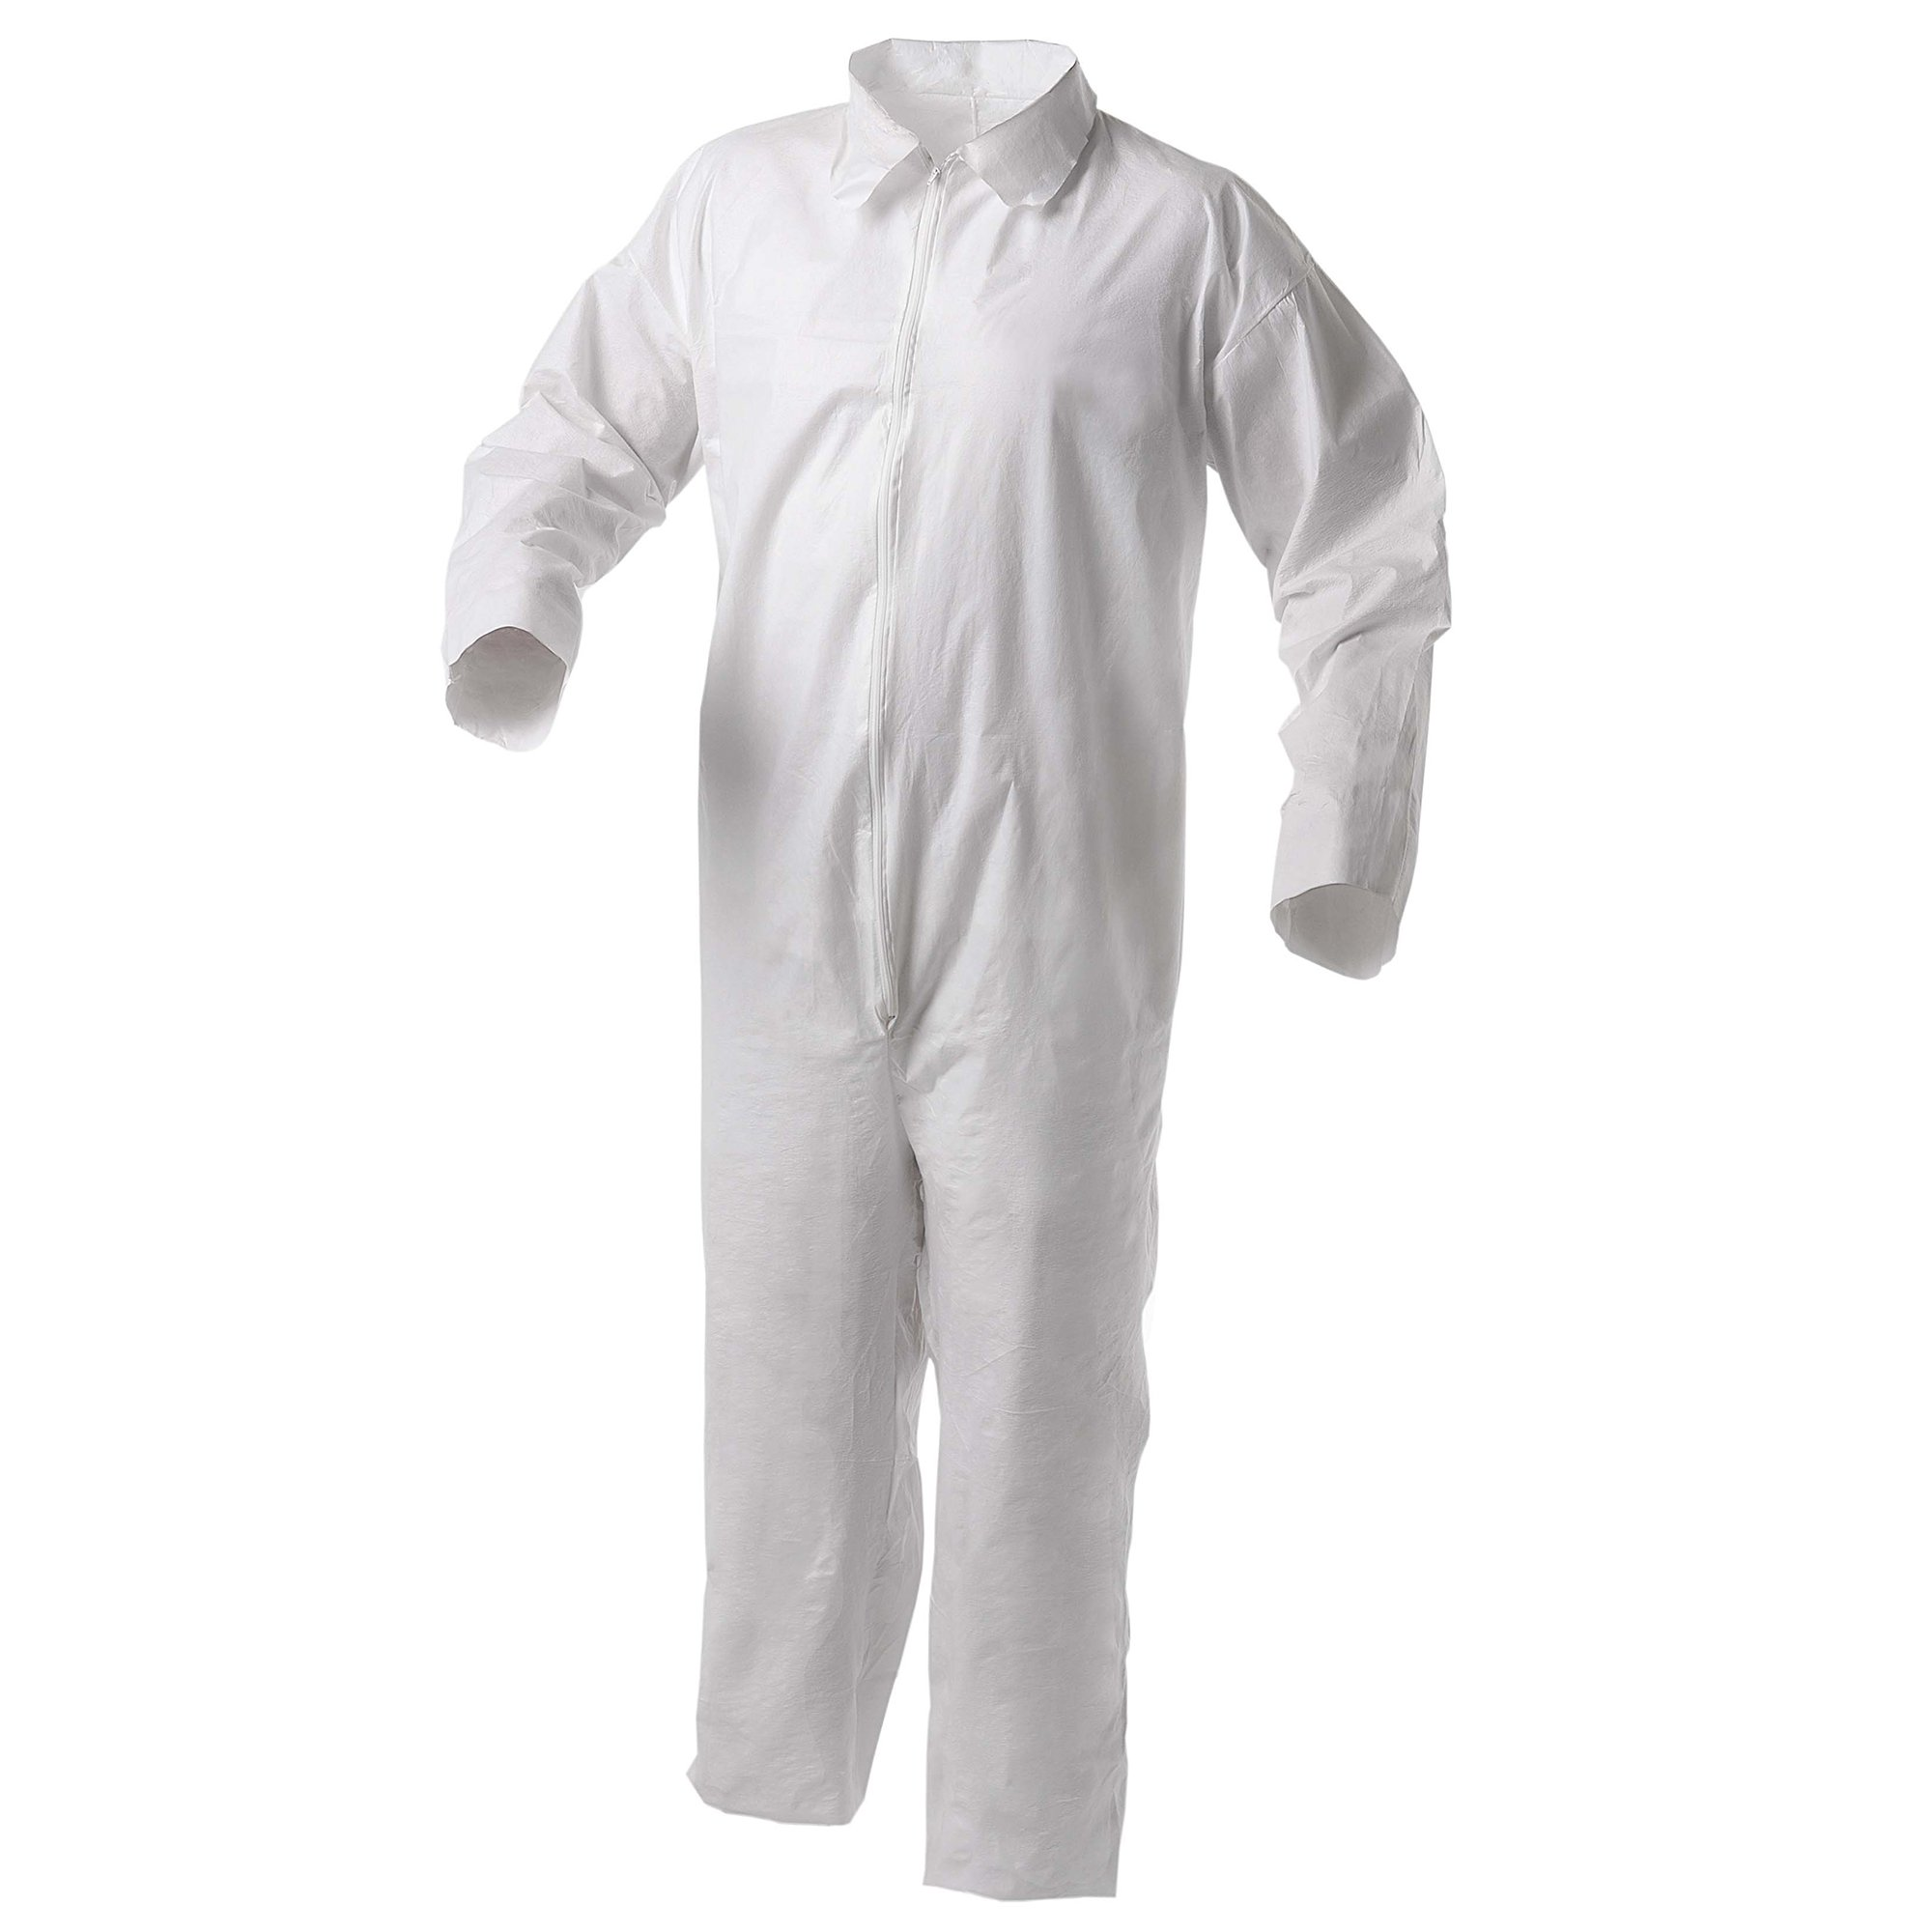 Kleenguard A35 Disposable Coveralls (38919), Liquid and Particle Protection, Zip Front, Open Wrists & Ankles, White, XL, 25 Garments / Case